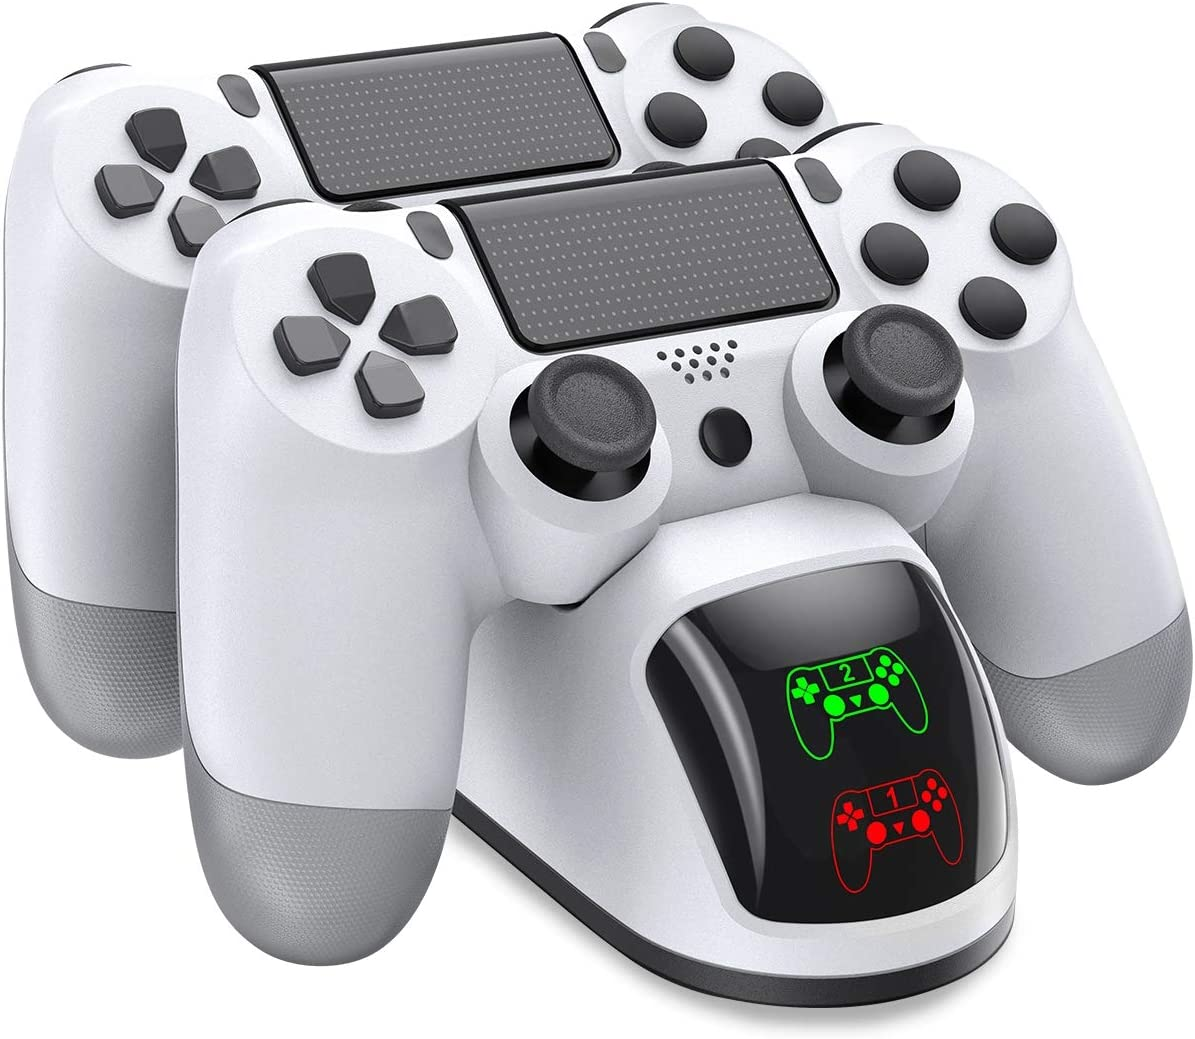 Cargador Para Controles De Ps4 Beboncool, Color Blanco